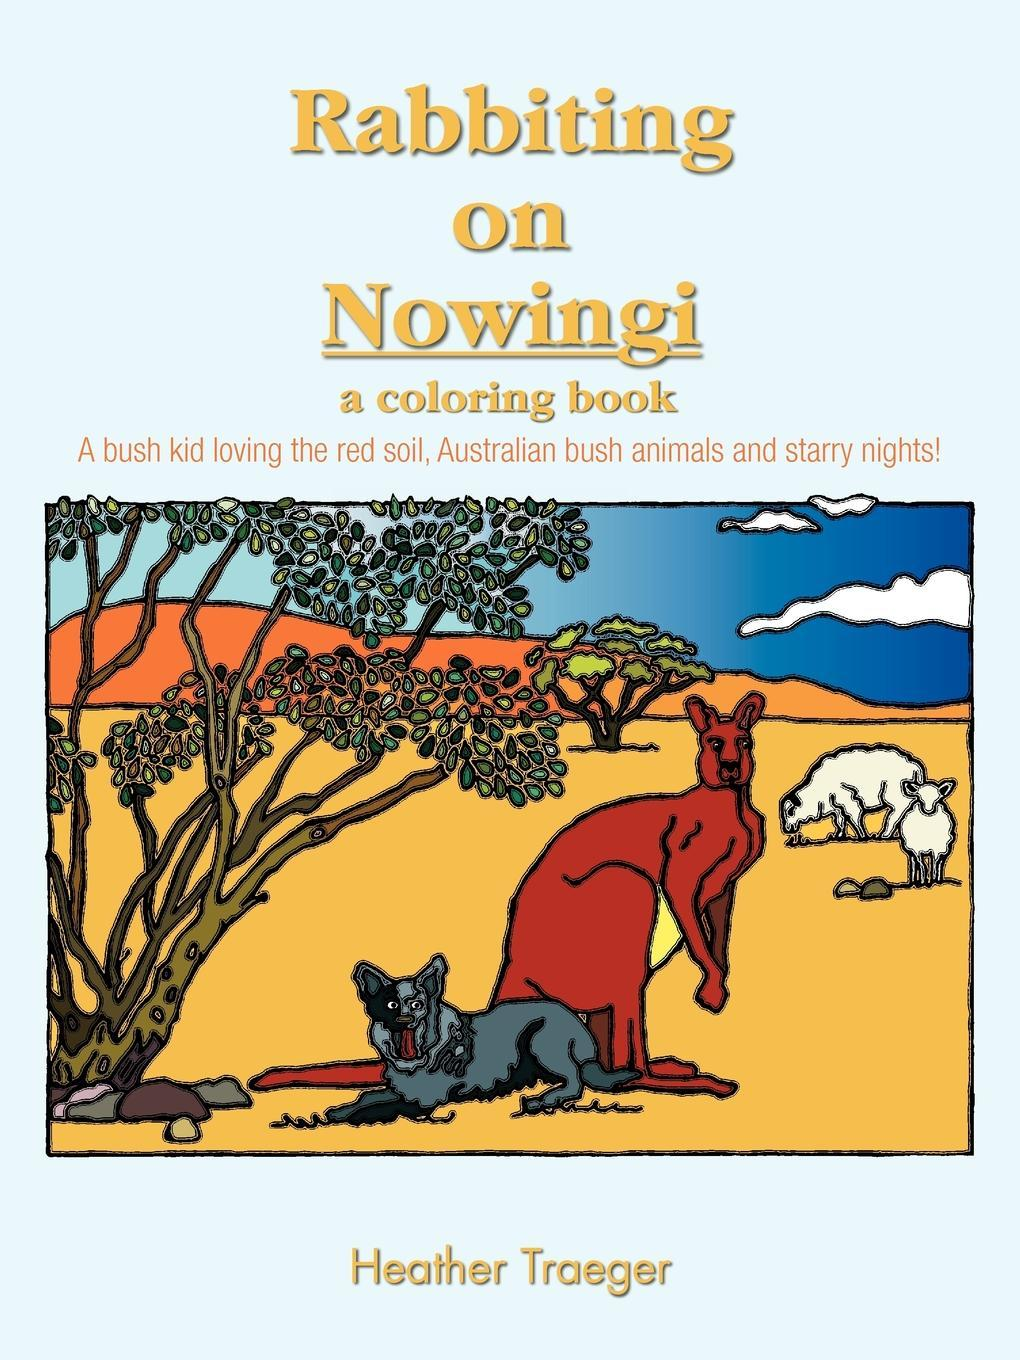 Rabbiting on Nowingi - a coloring book: A bush kid loving the red soil, Australian bush animals and starry nights! EB9781466900592